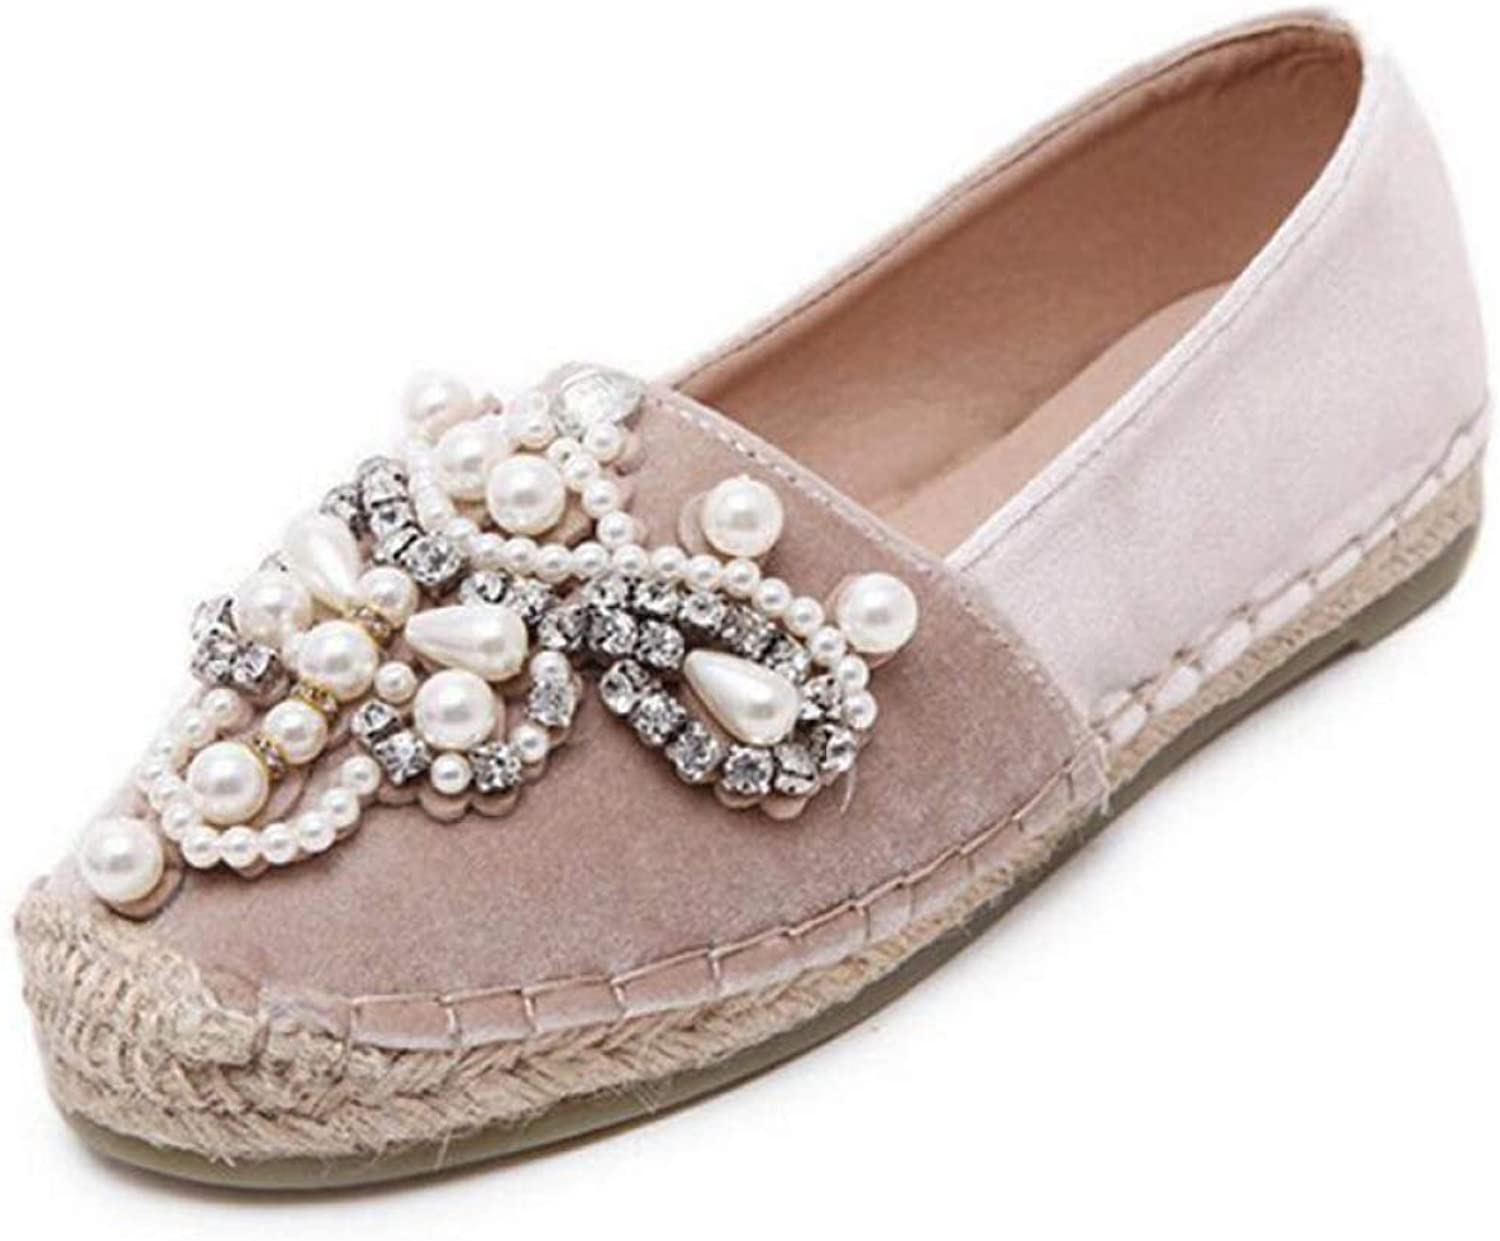 DETAIWIN Women Round Toe Flat Loafers shoes Leisure Crystal Slip On Comfort Ladies String Bead Casual Espadrilles